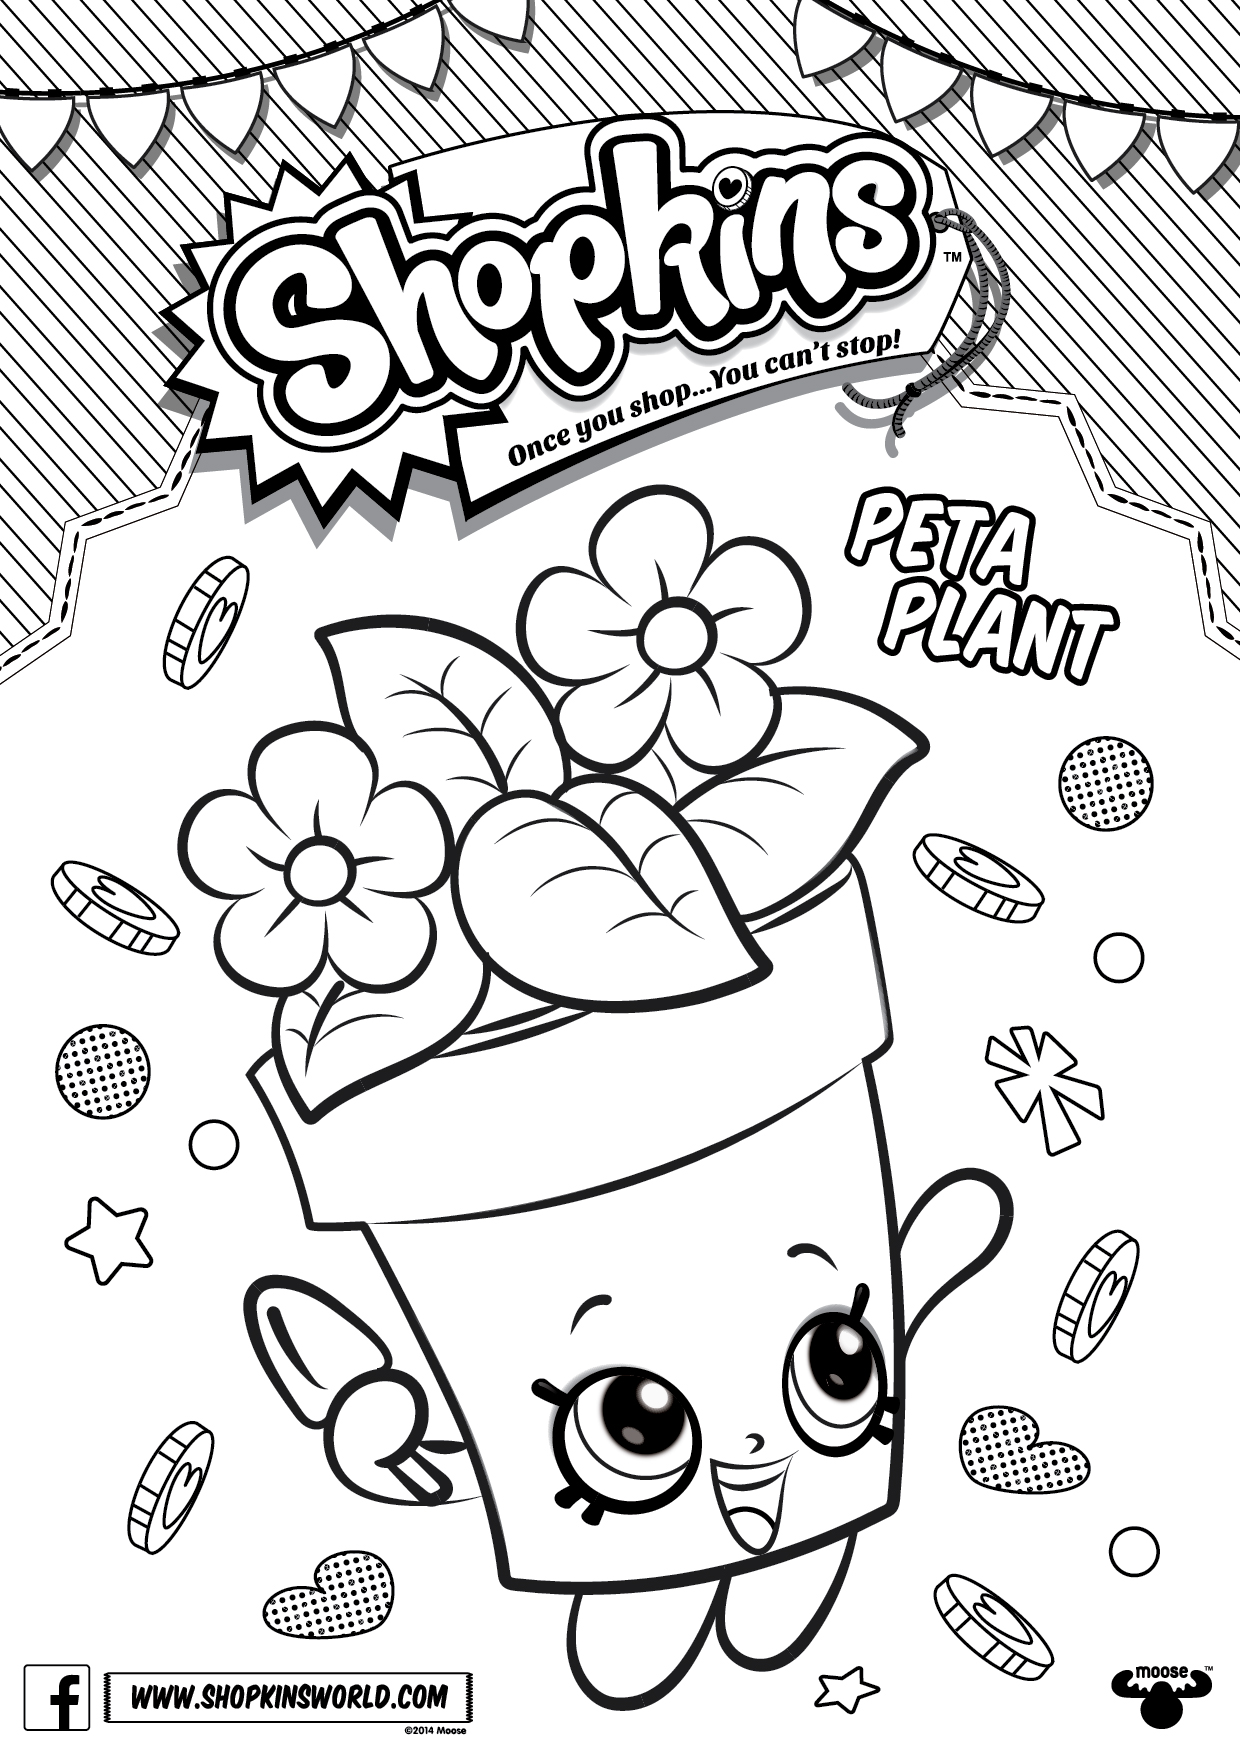 Shopkins coloring pages wishes - Shopkins Coloring Pages 4